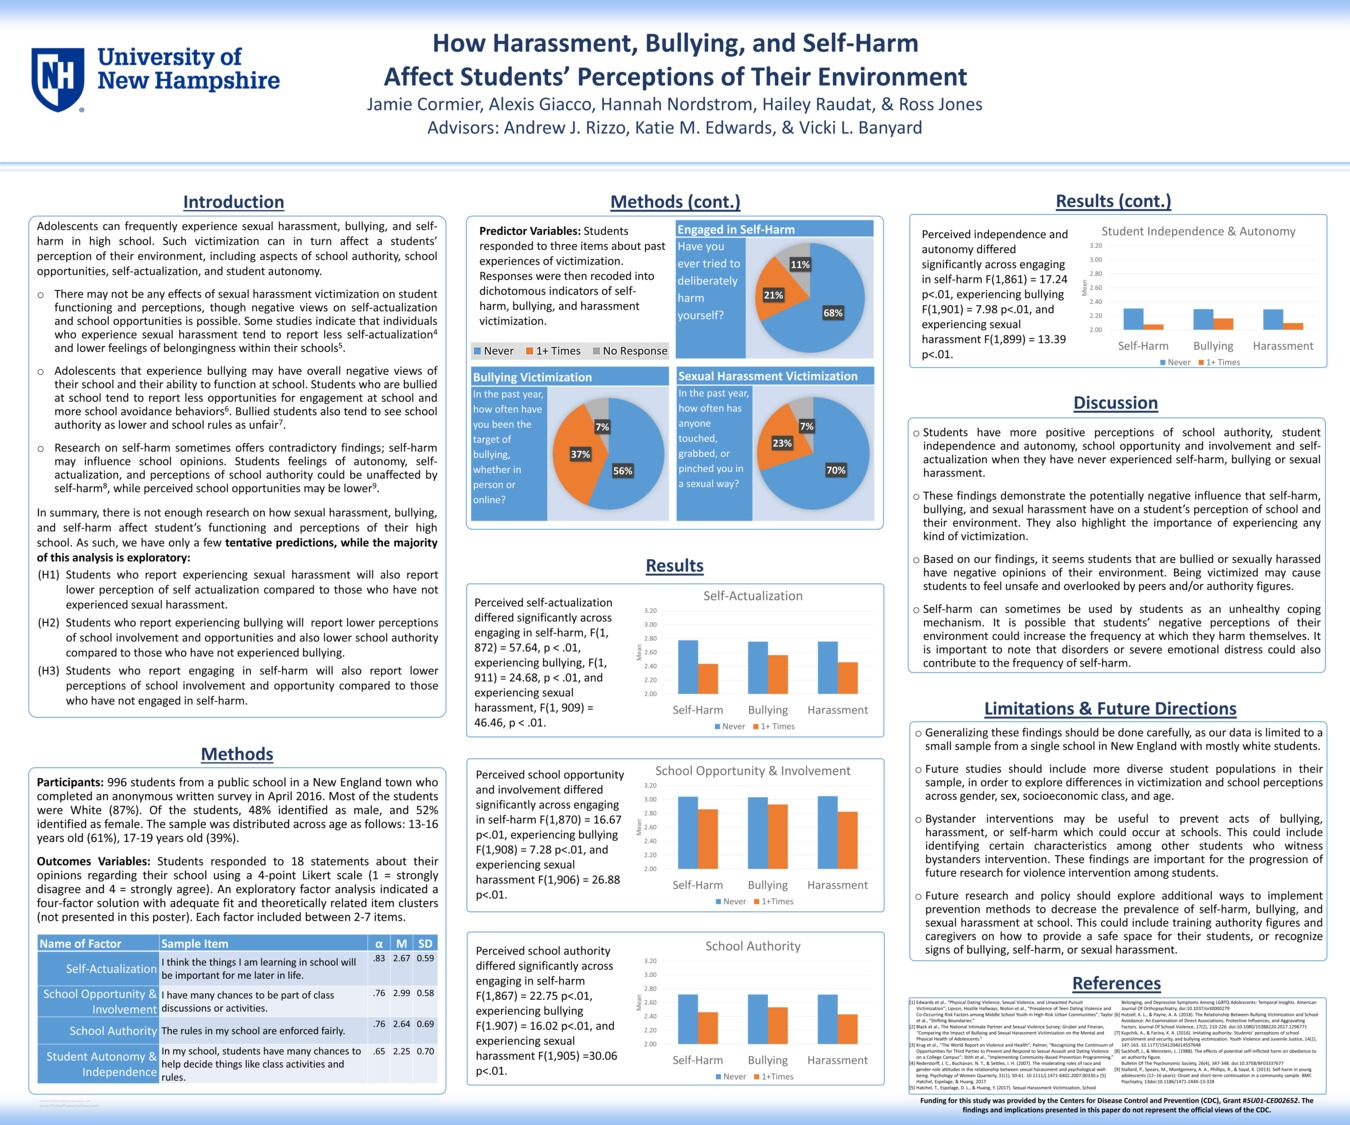 How Harassment, Bullying, And Self-Harm Affect Students' Perceptions Of Their Environment by ajr1039